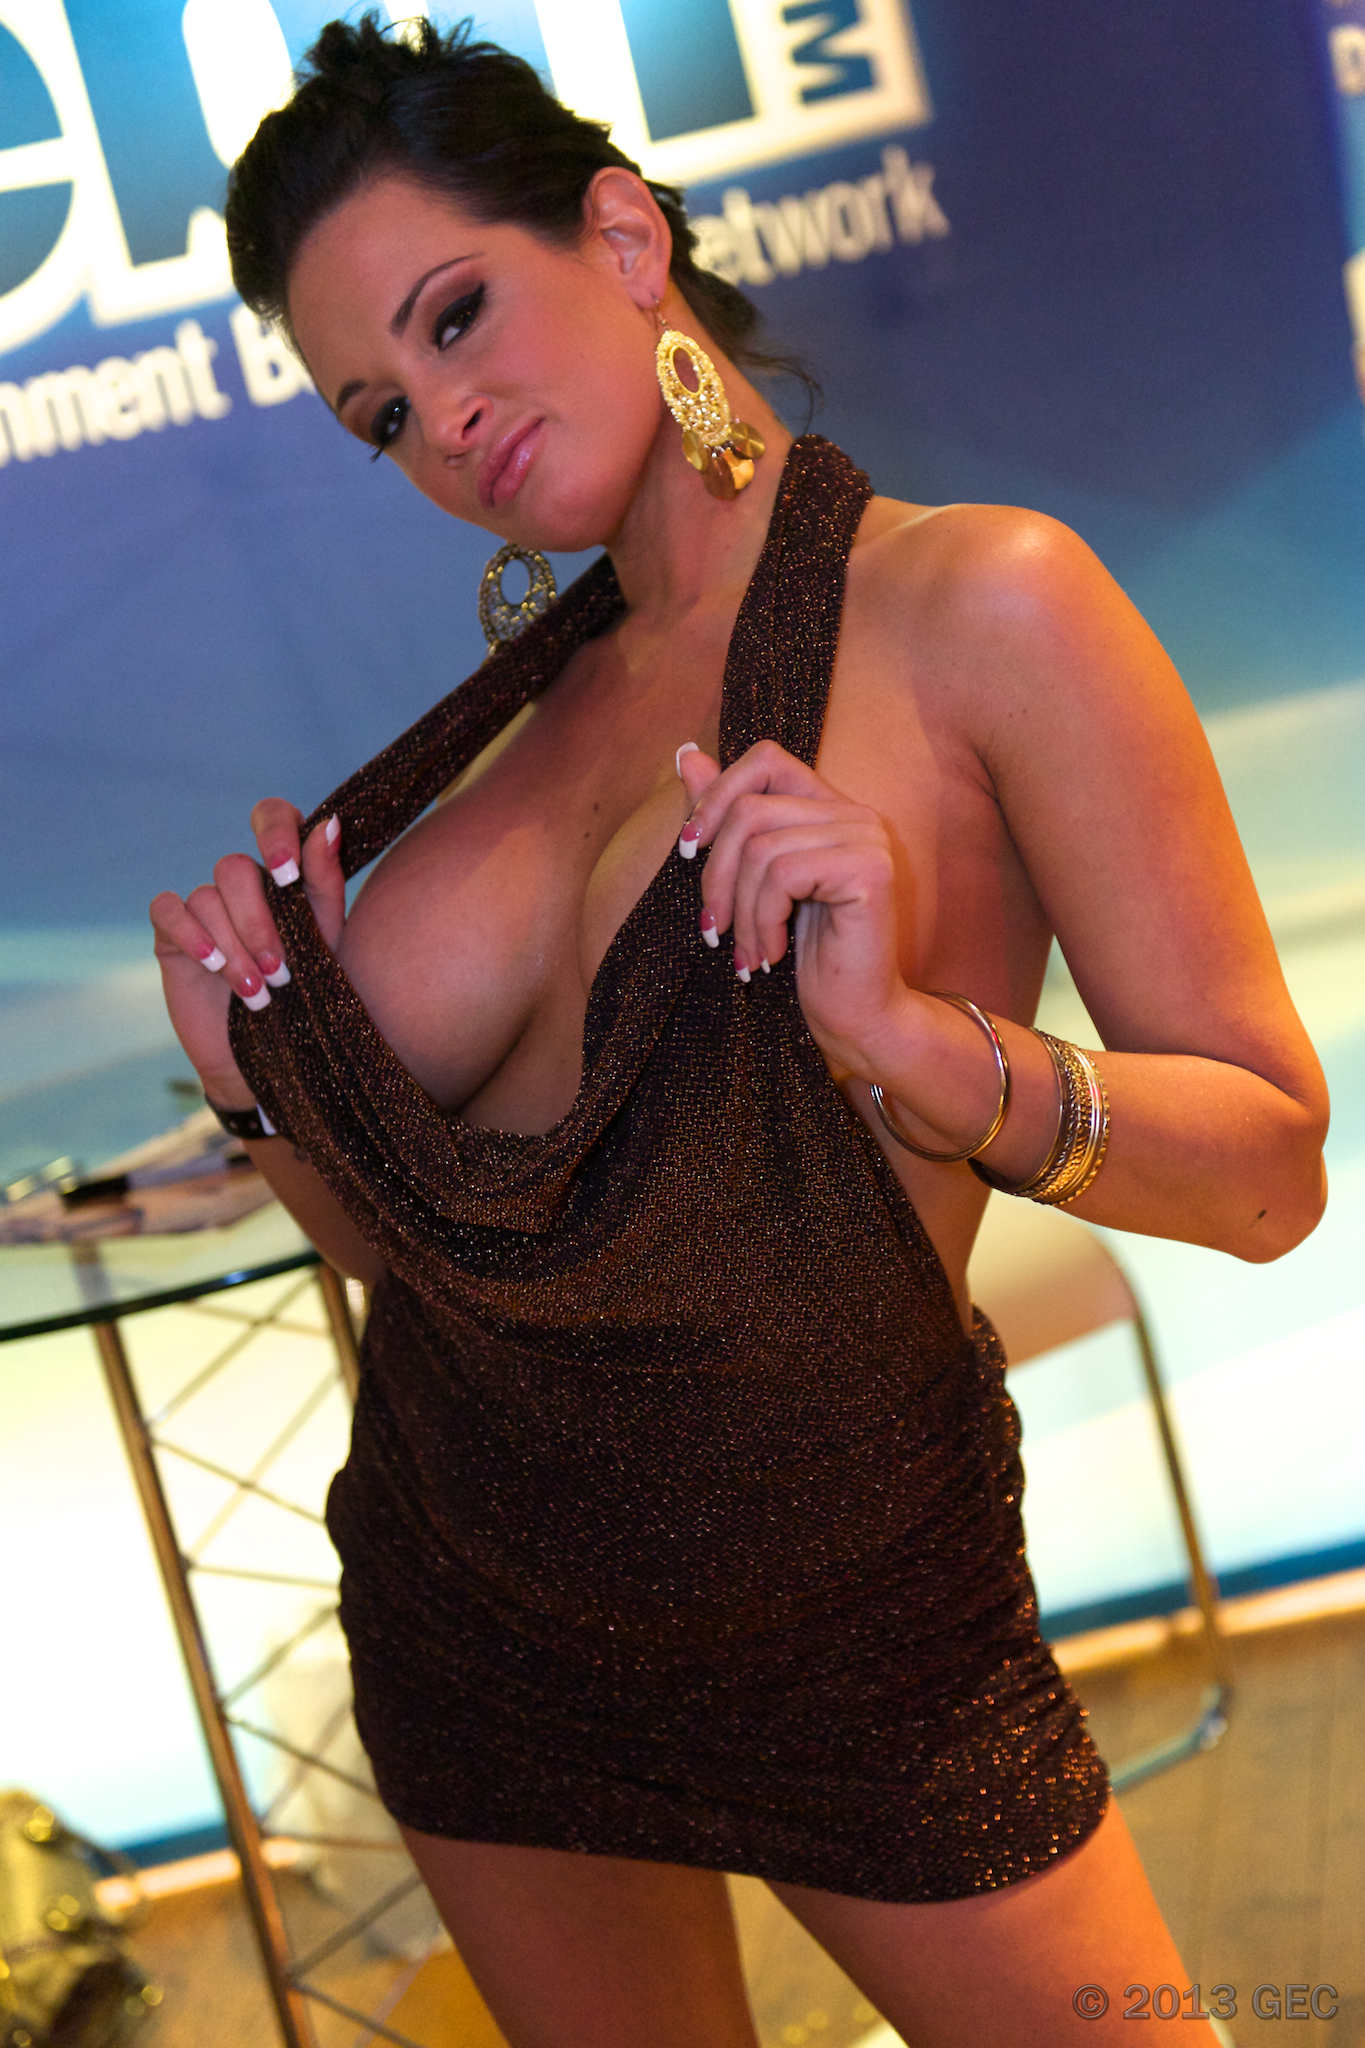 File:Tory Lane AEE 2013.jpg  Wikimedia Commons